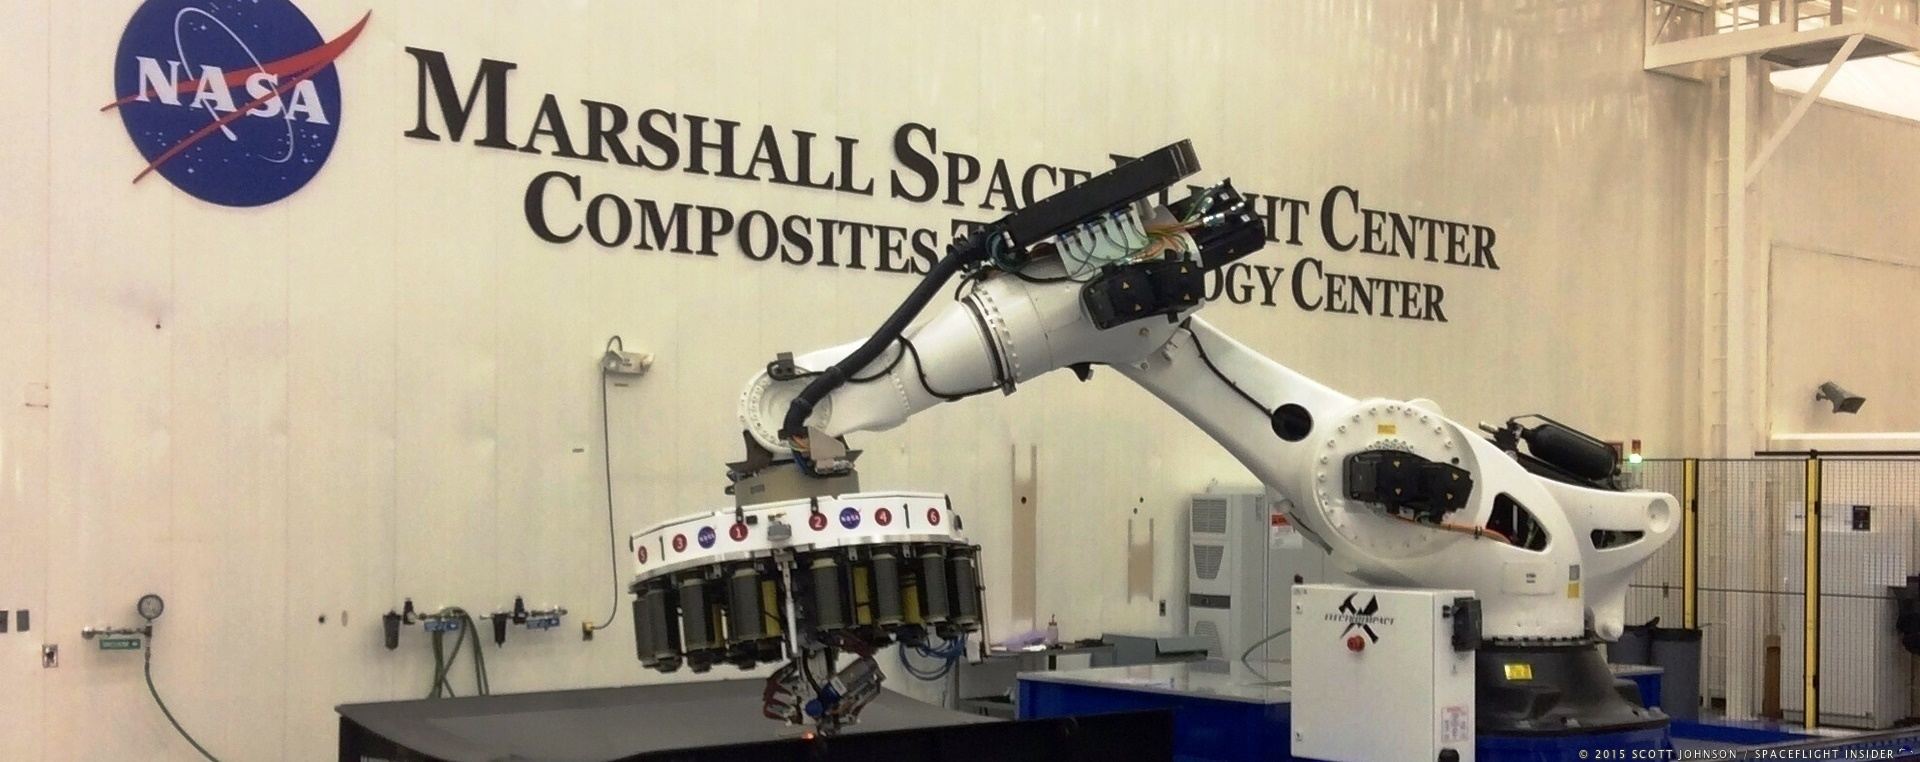 Robotic arm at NASA's Marshall Space Flight Center Composites facility photo credit Scott Johnson SpaceFlight Insider